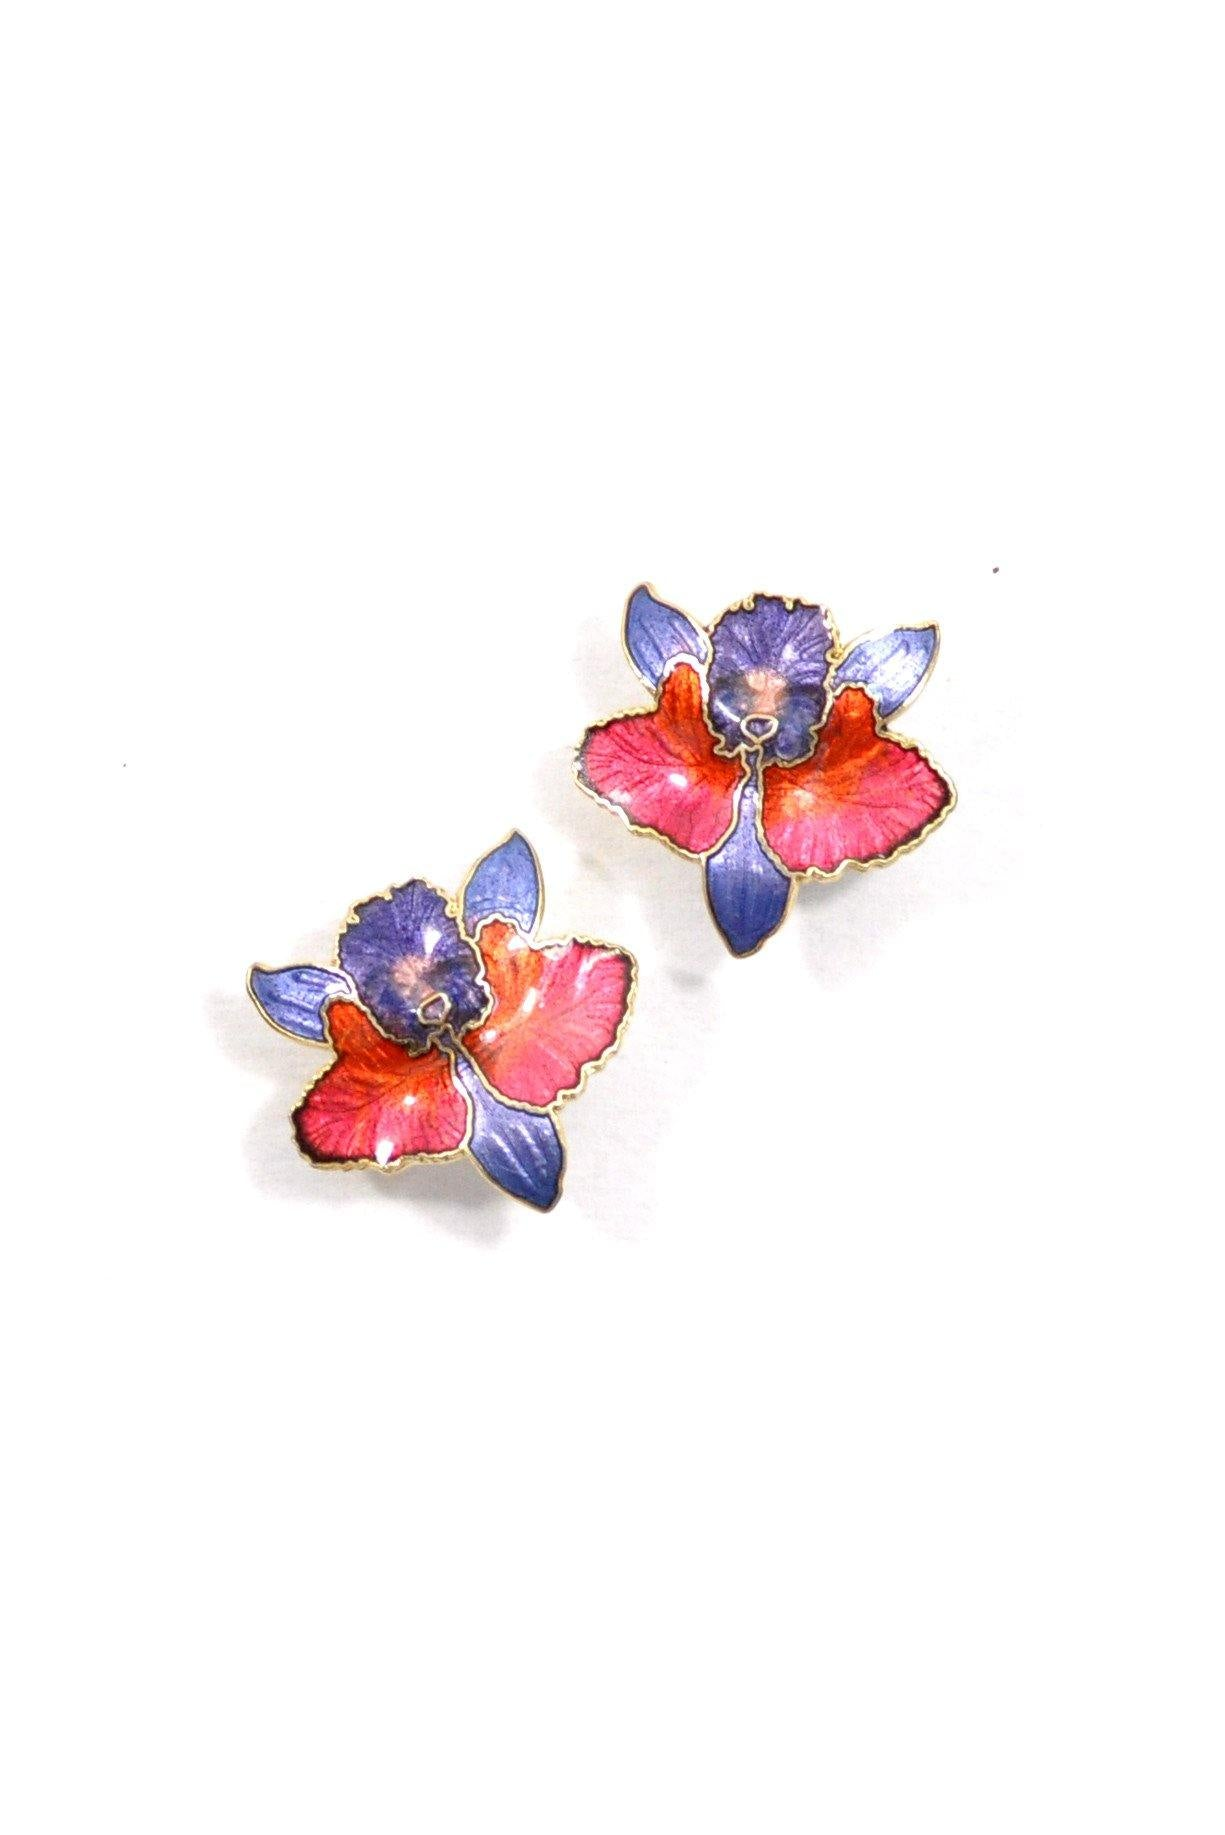 80's__Vintage__Orchid Pierced Earrings